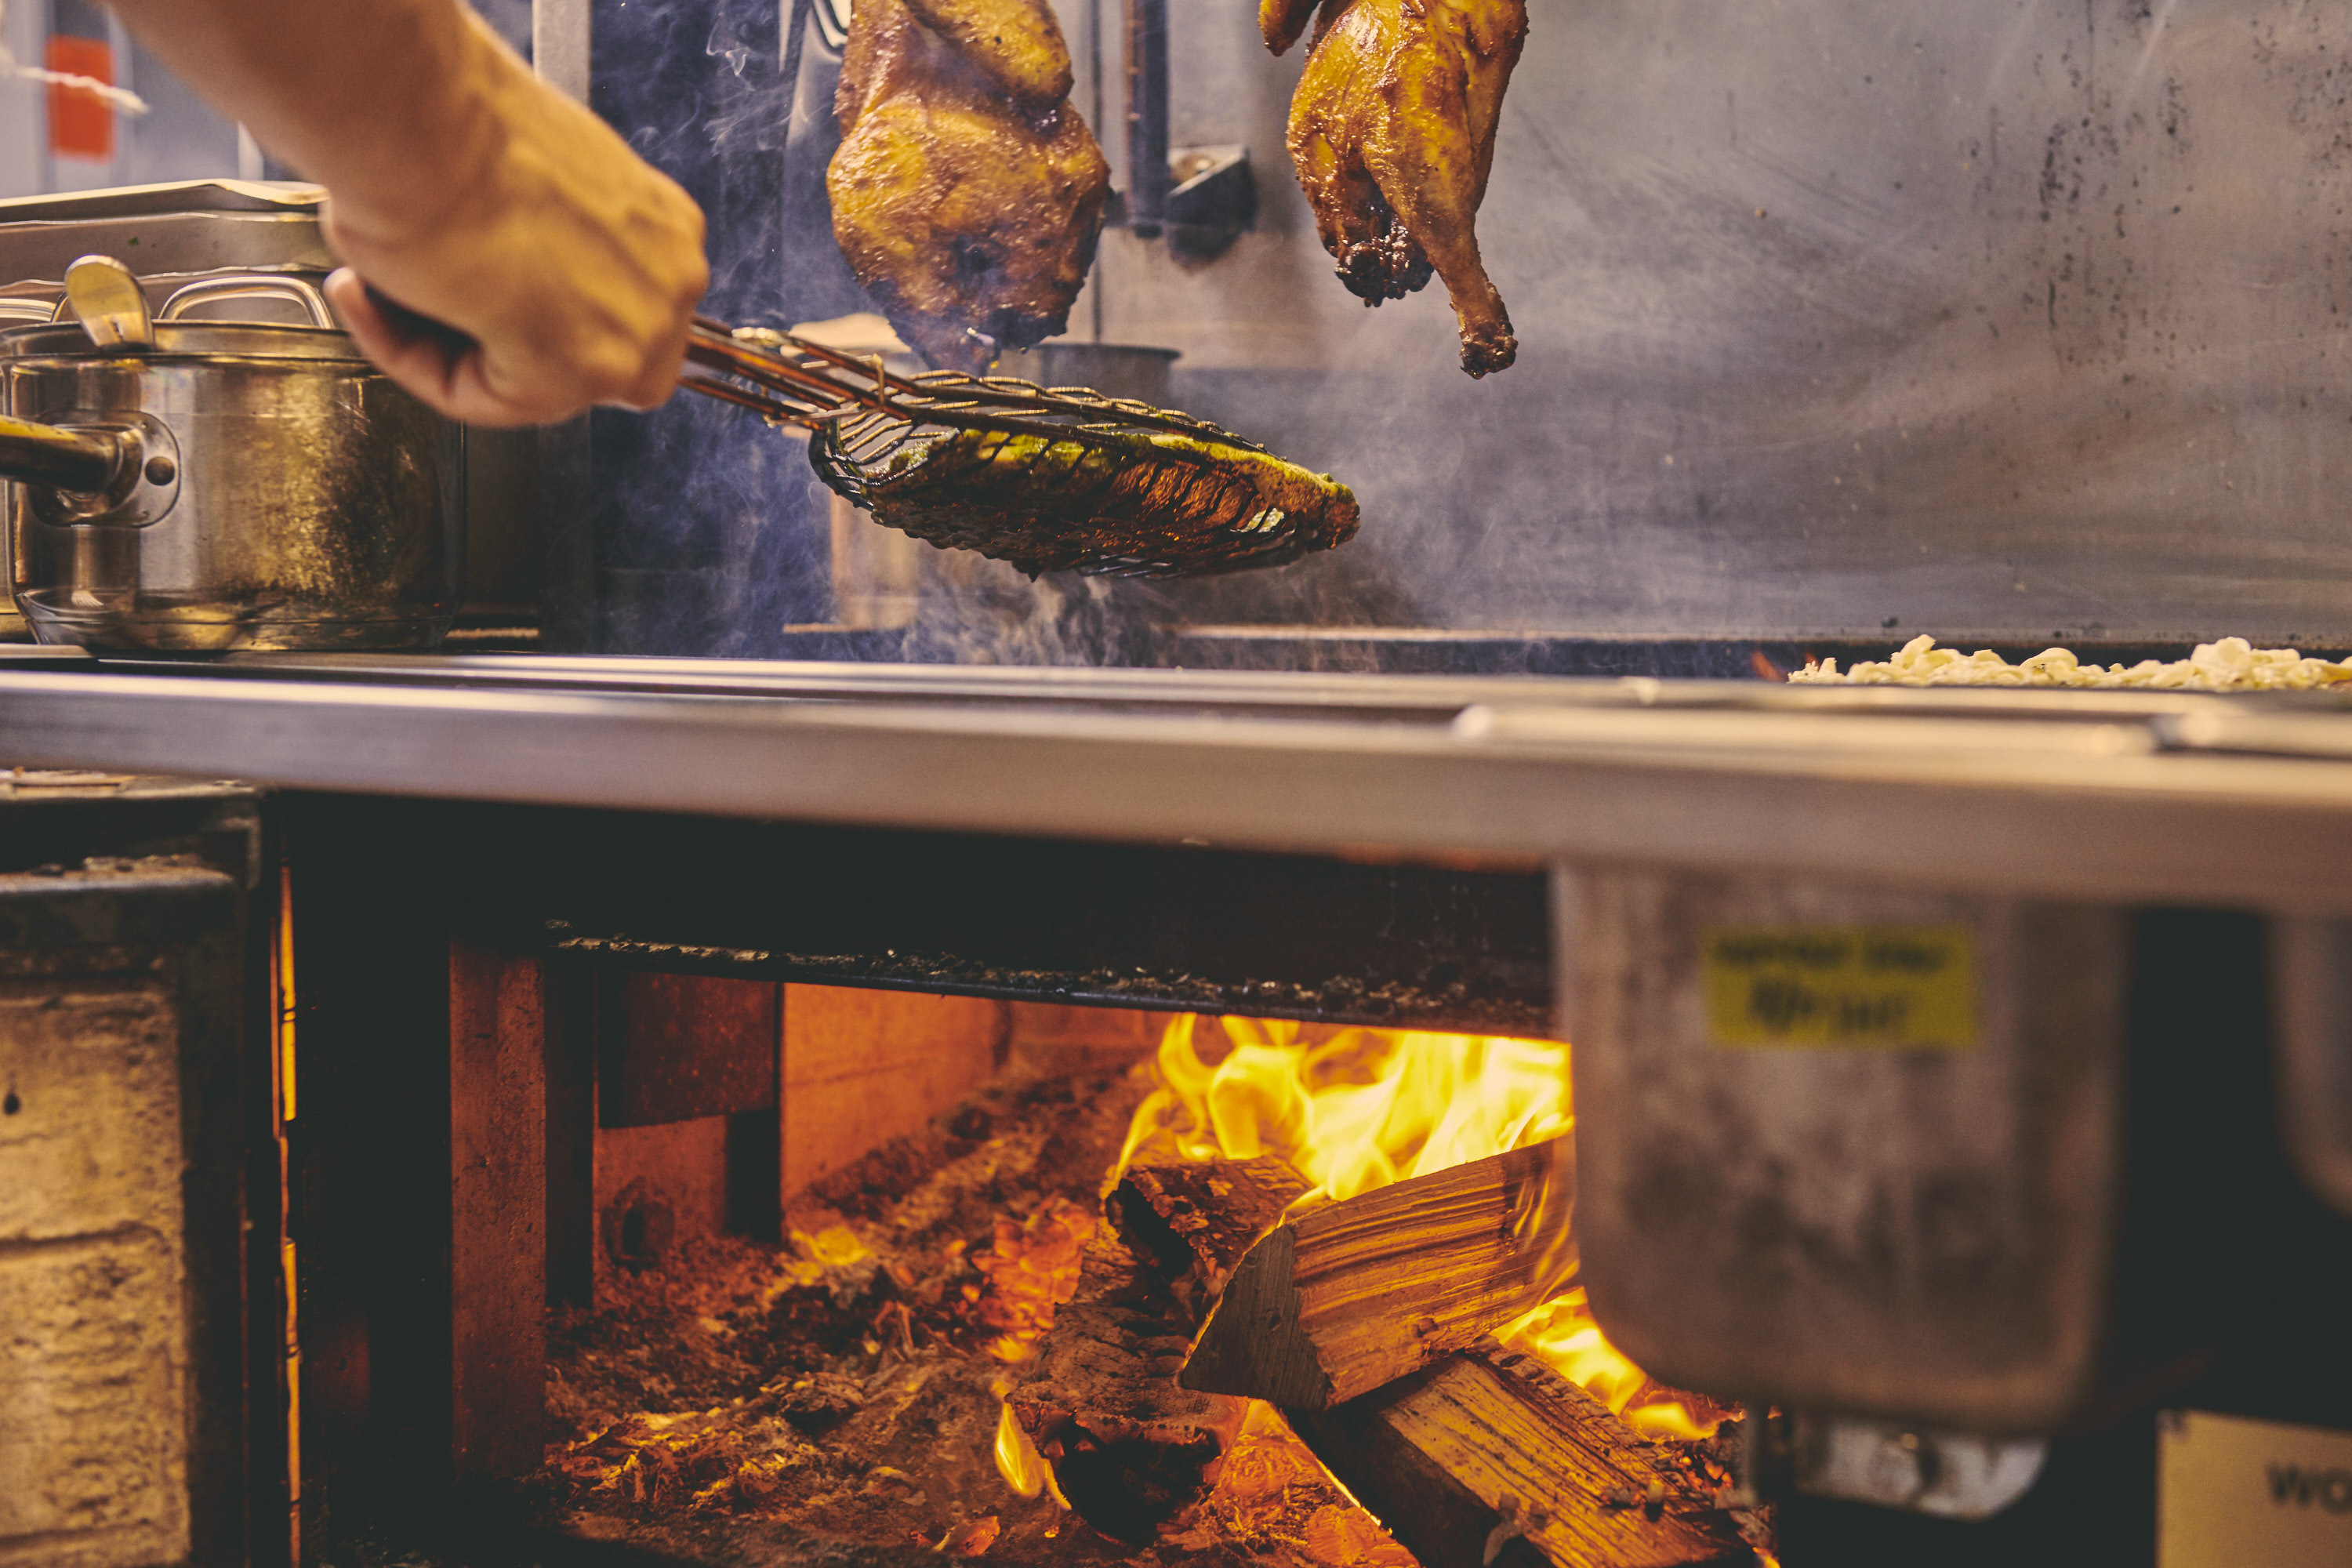 The wood grill at Oxomoco